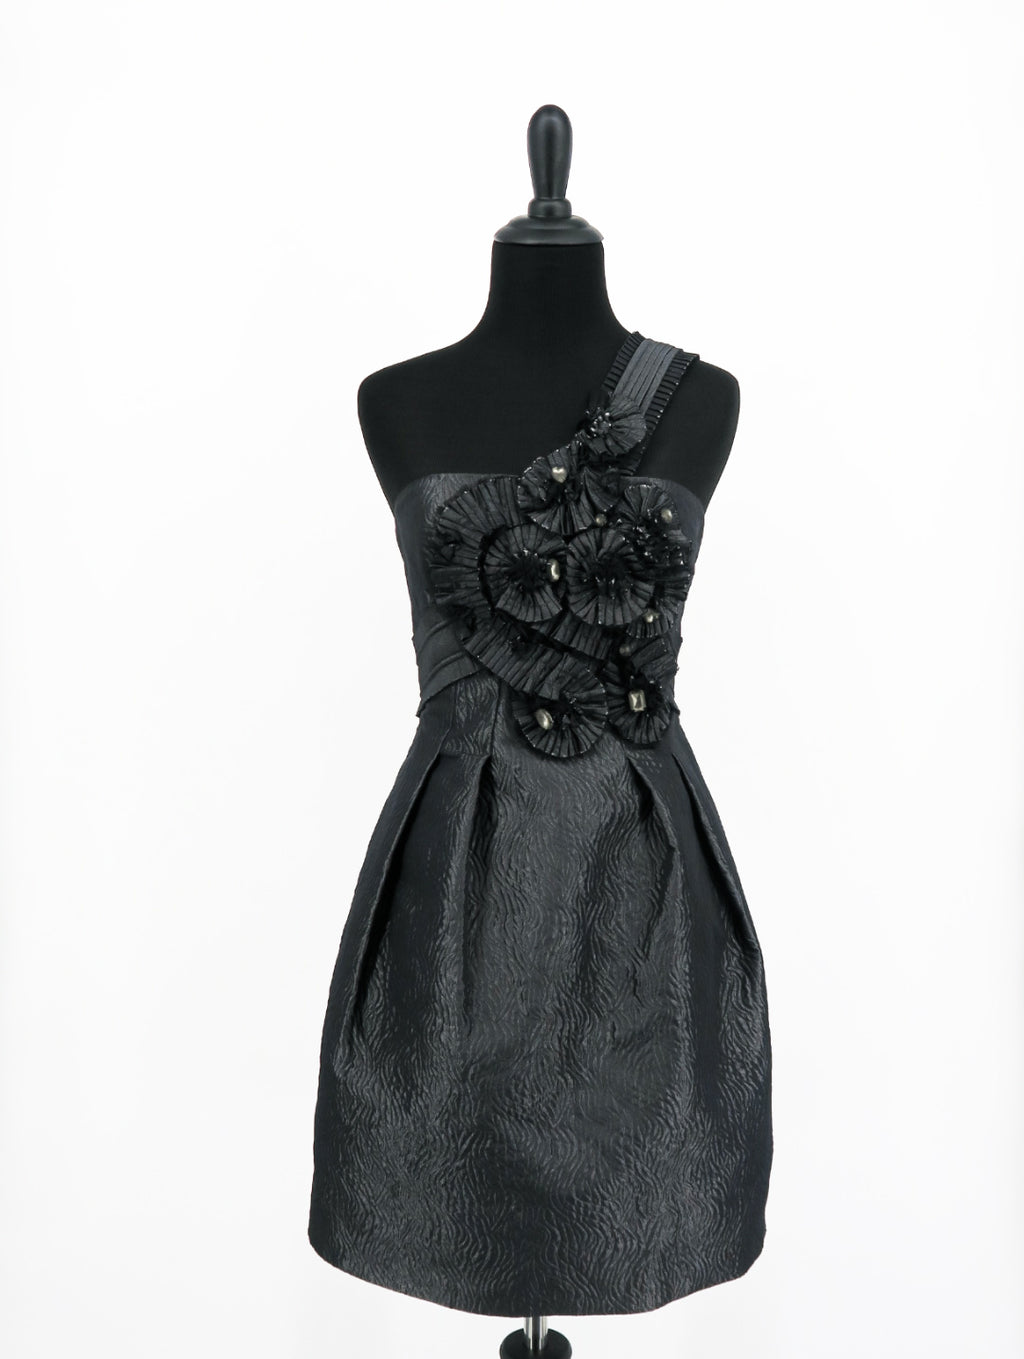 BCBG Maxazria Gunmetal Azria One Dress - Sachy's Closet